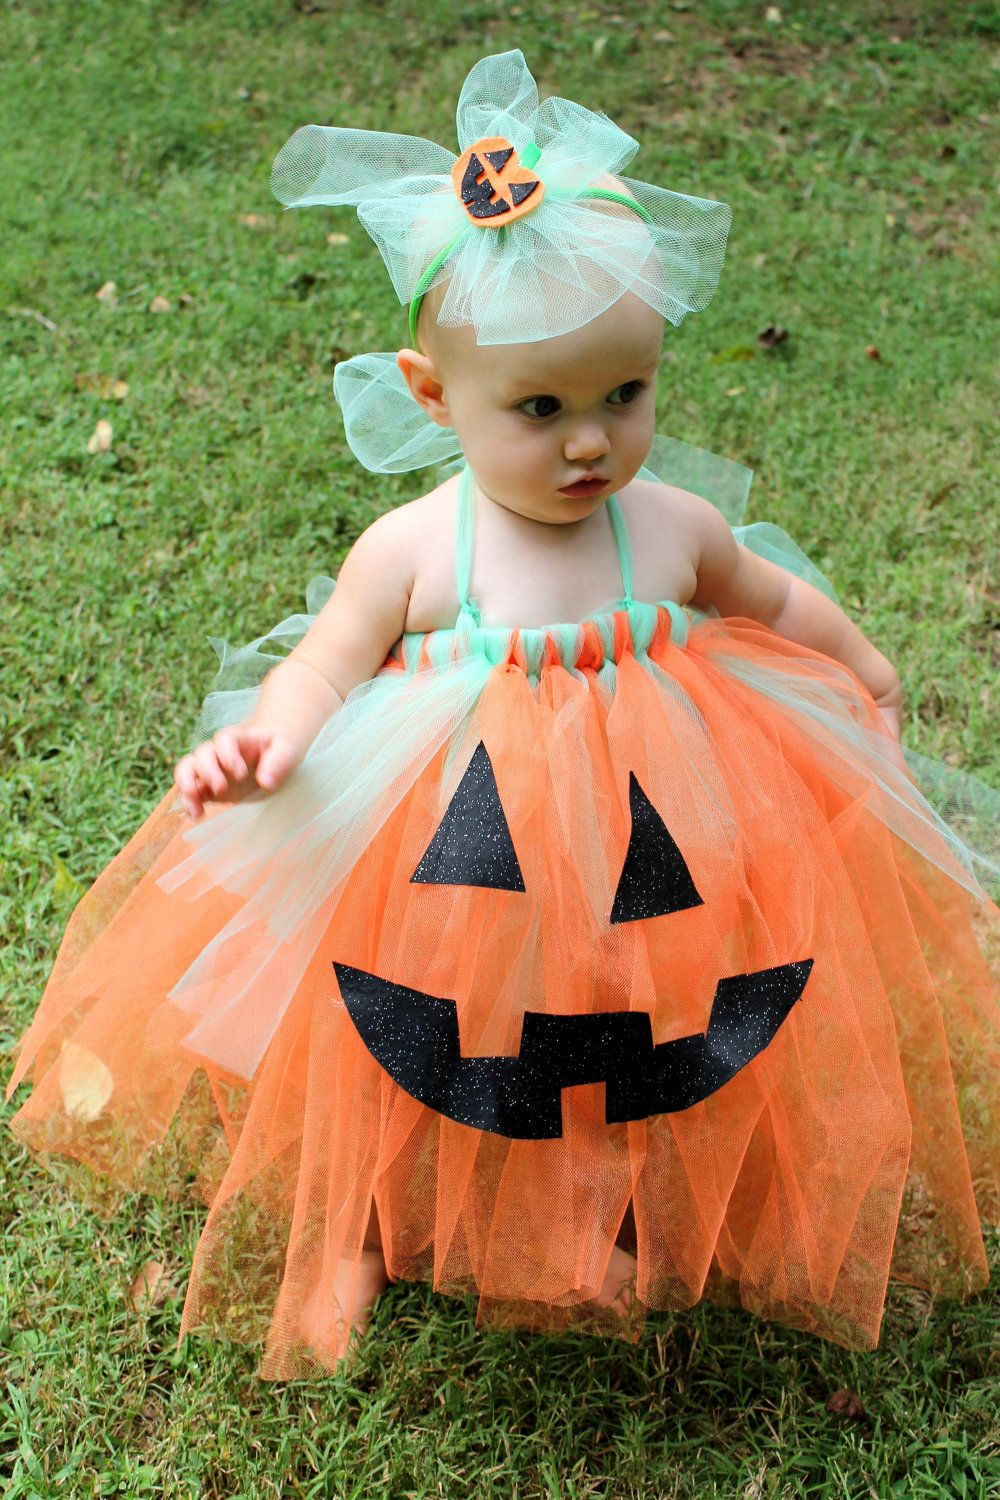 I really want to figure out how to make this for Bella. OR